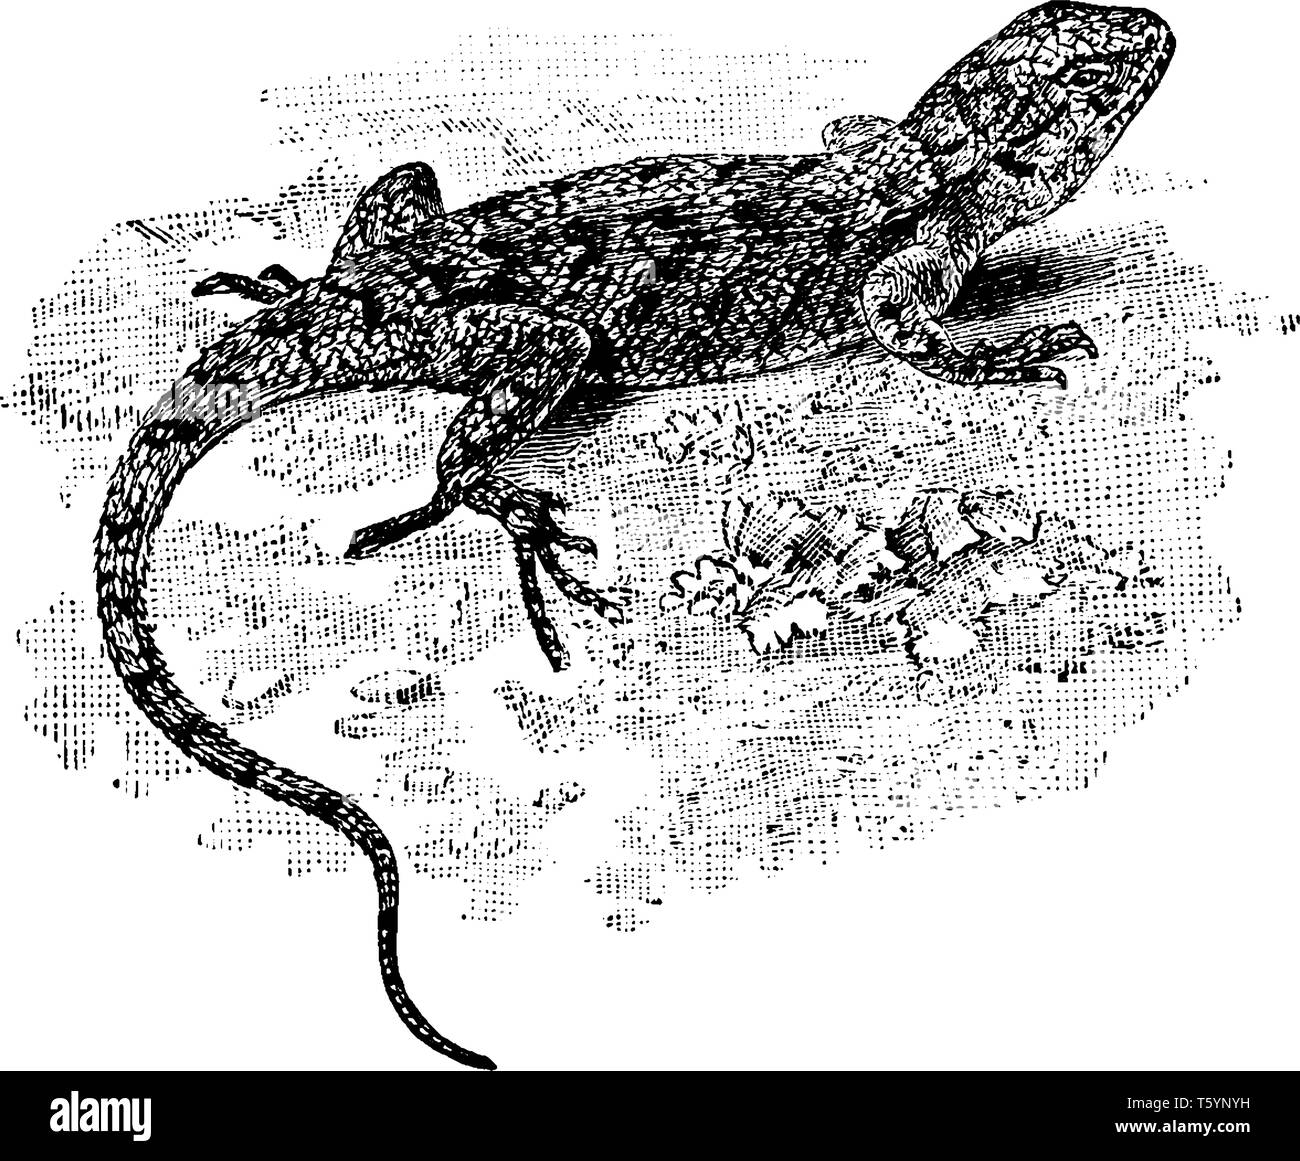 Eastern Fence Lizard is a medium sized species of lizard common along the east coast of North America, vintage line drawing or engraving illustration. - Stock Vector